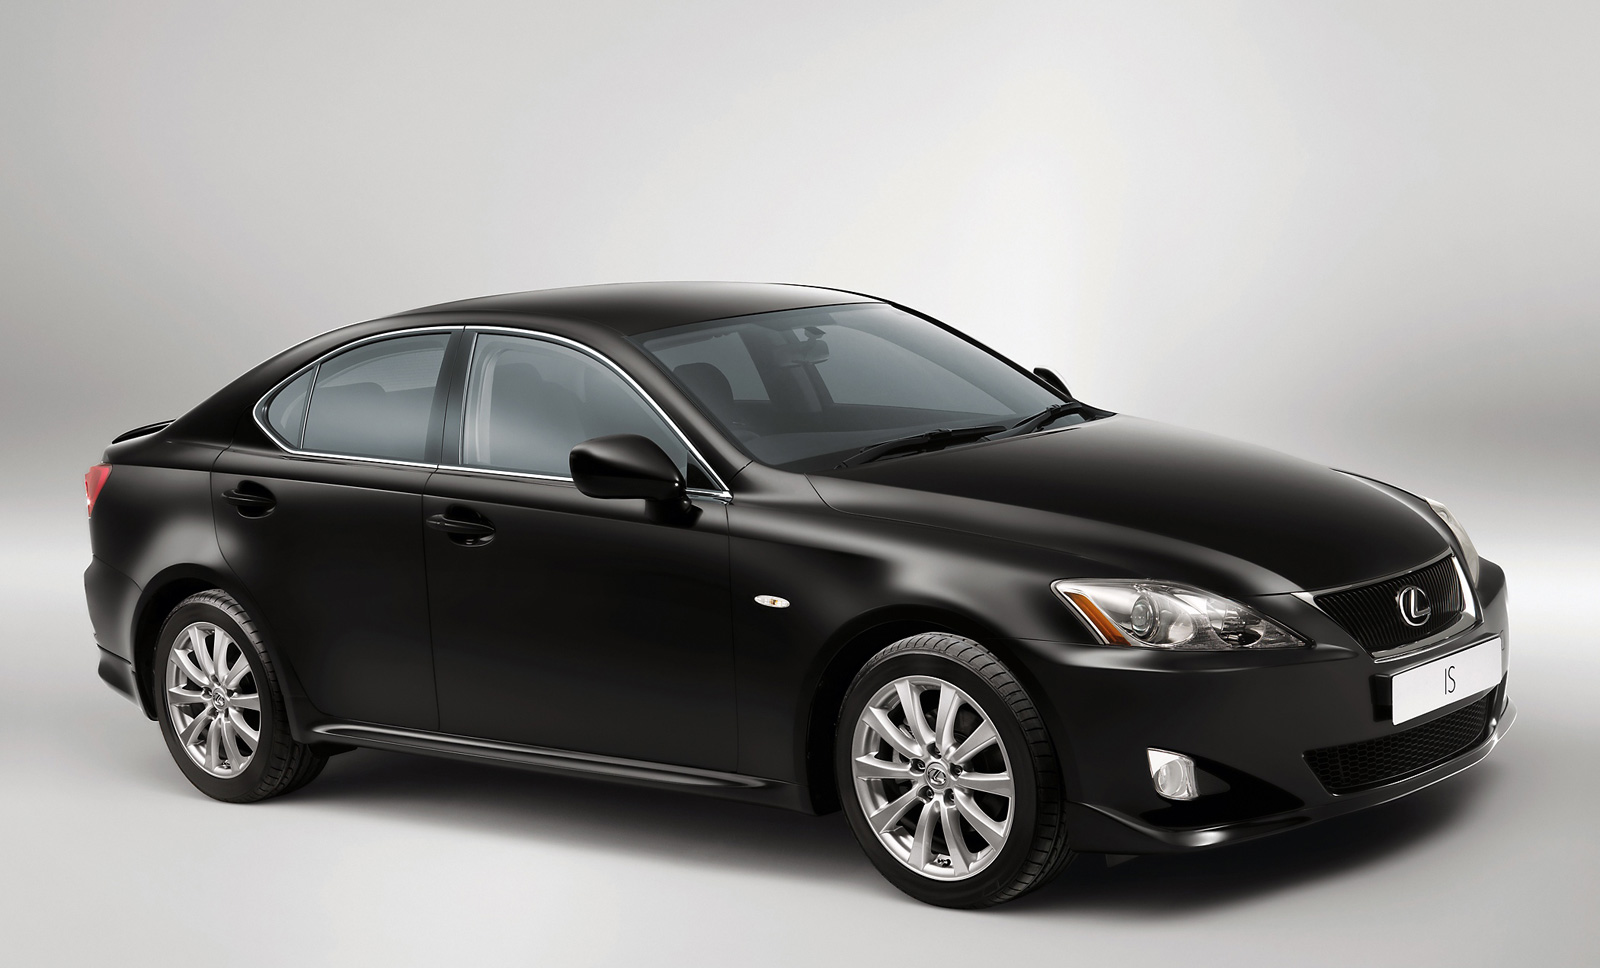 Lexus IS 250 SR Free Picture Download Image Of